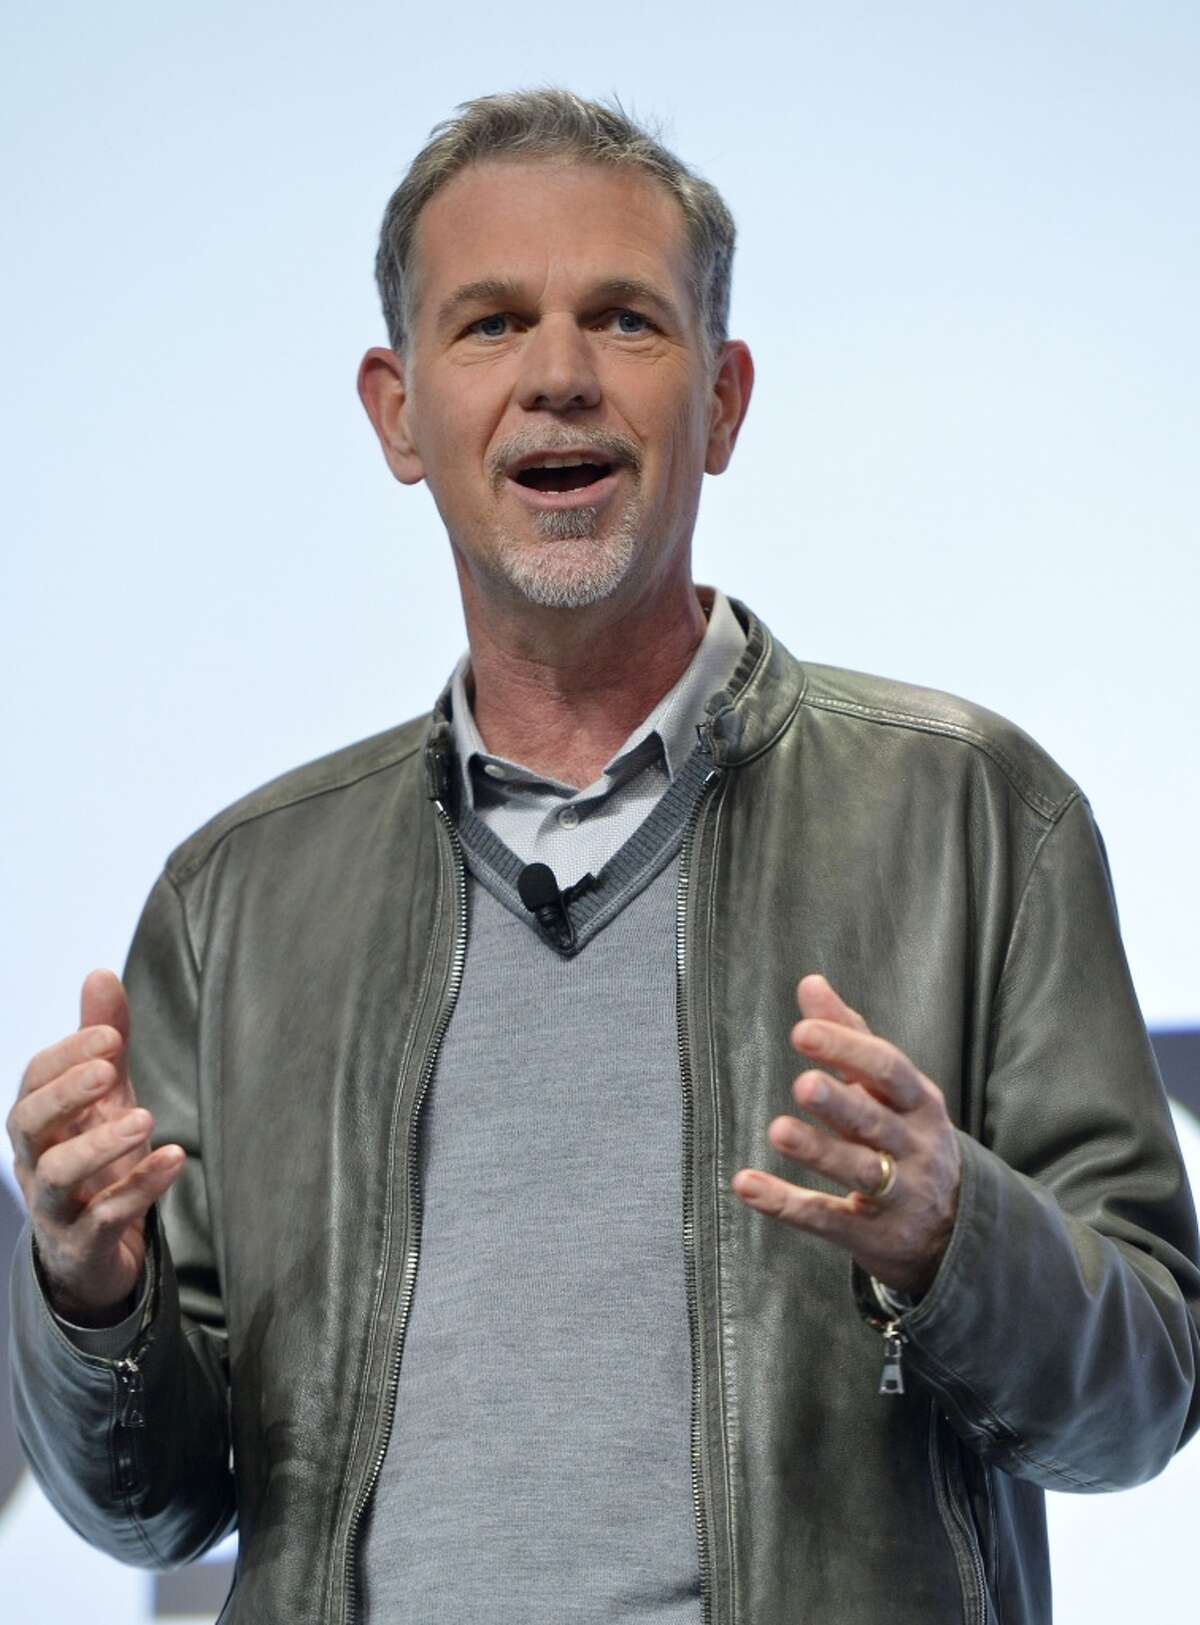 20. Reed Hastings, NetflixMarket cap : $27 billion Hastings' 2013 total compensation: $8 million Hastings has been chief executive of Netflix since September 1998.